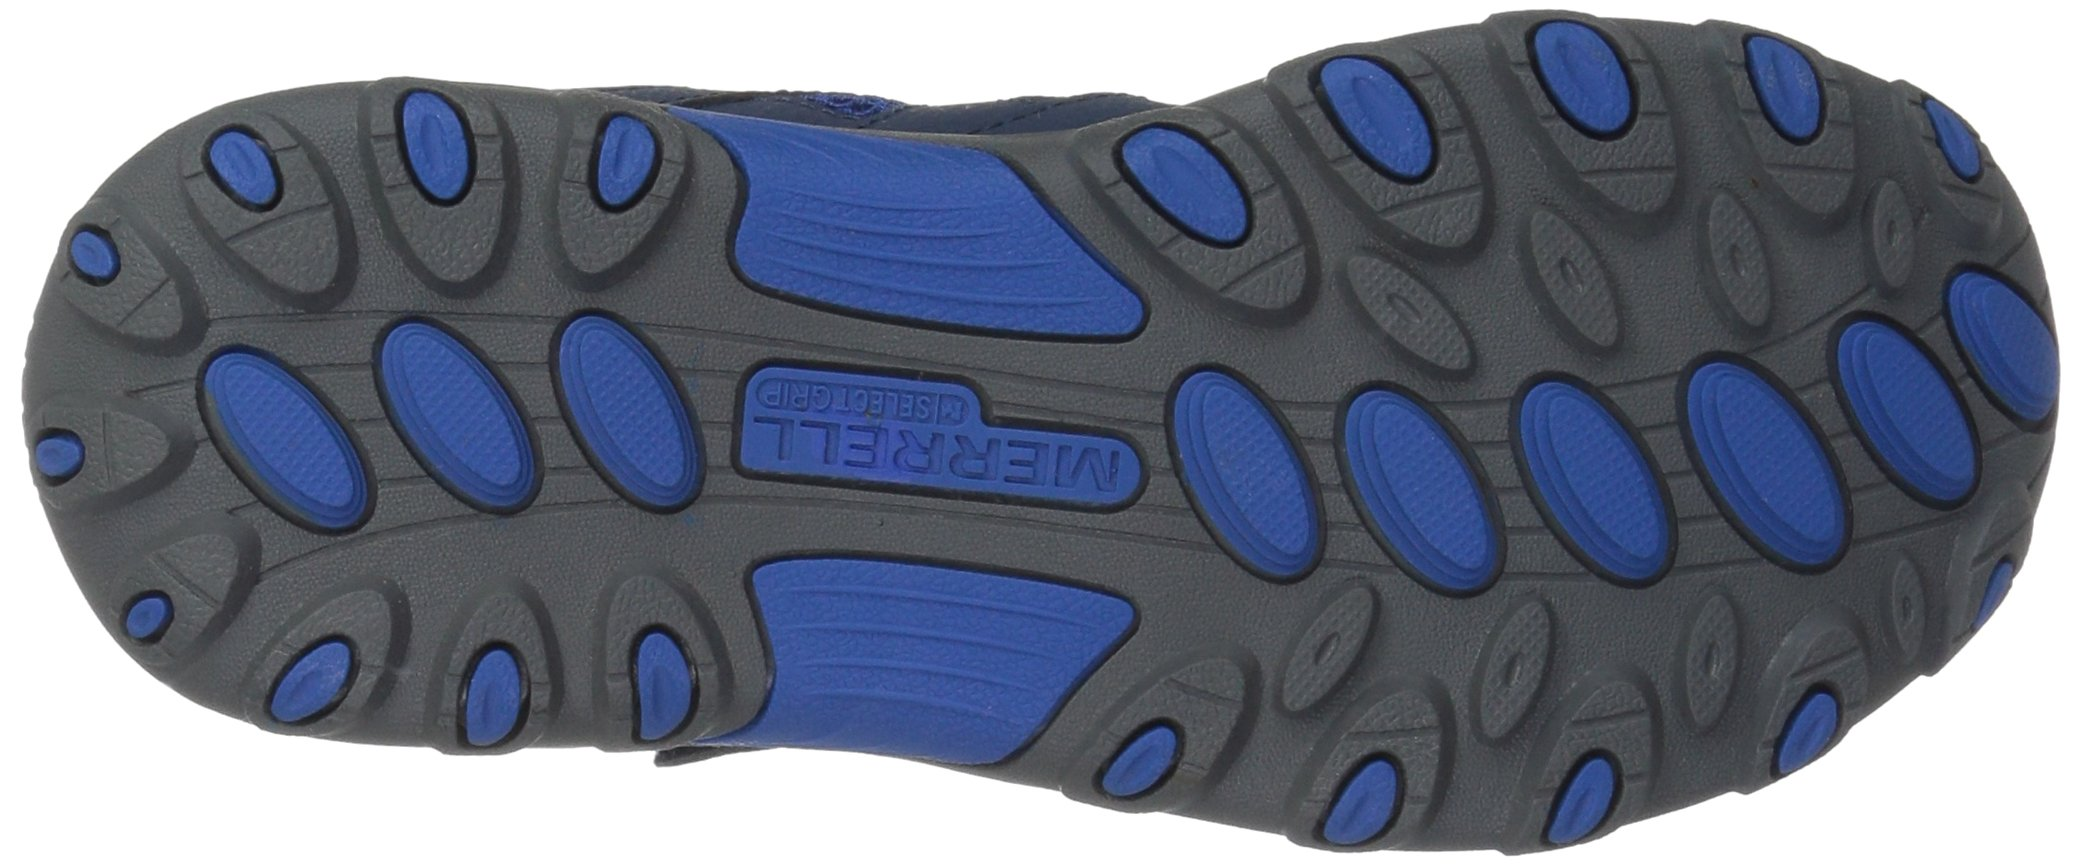 Merrell Trail Chaser Hiking Shoe, Navy, 4 M US Big Kid by Merrell (Image #3)